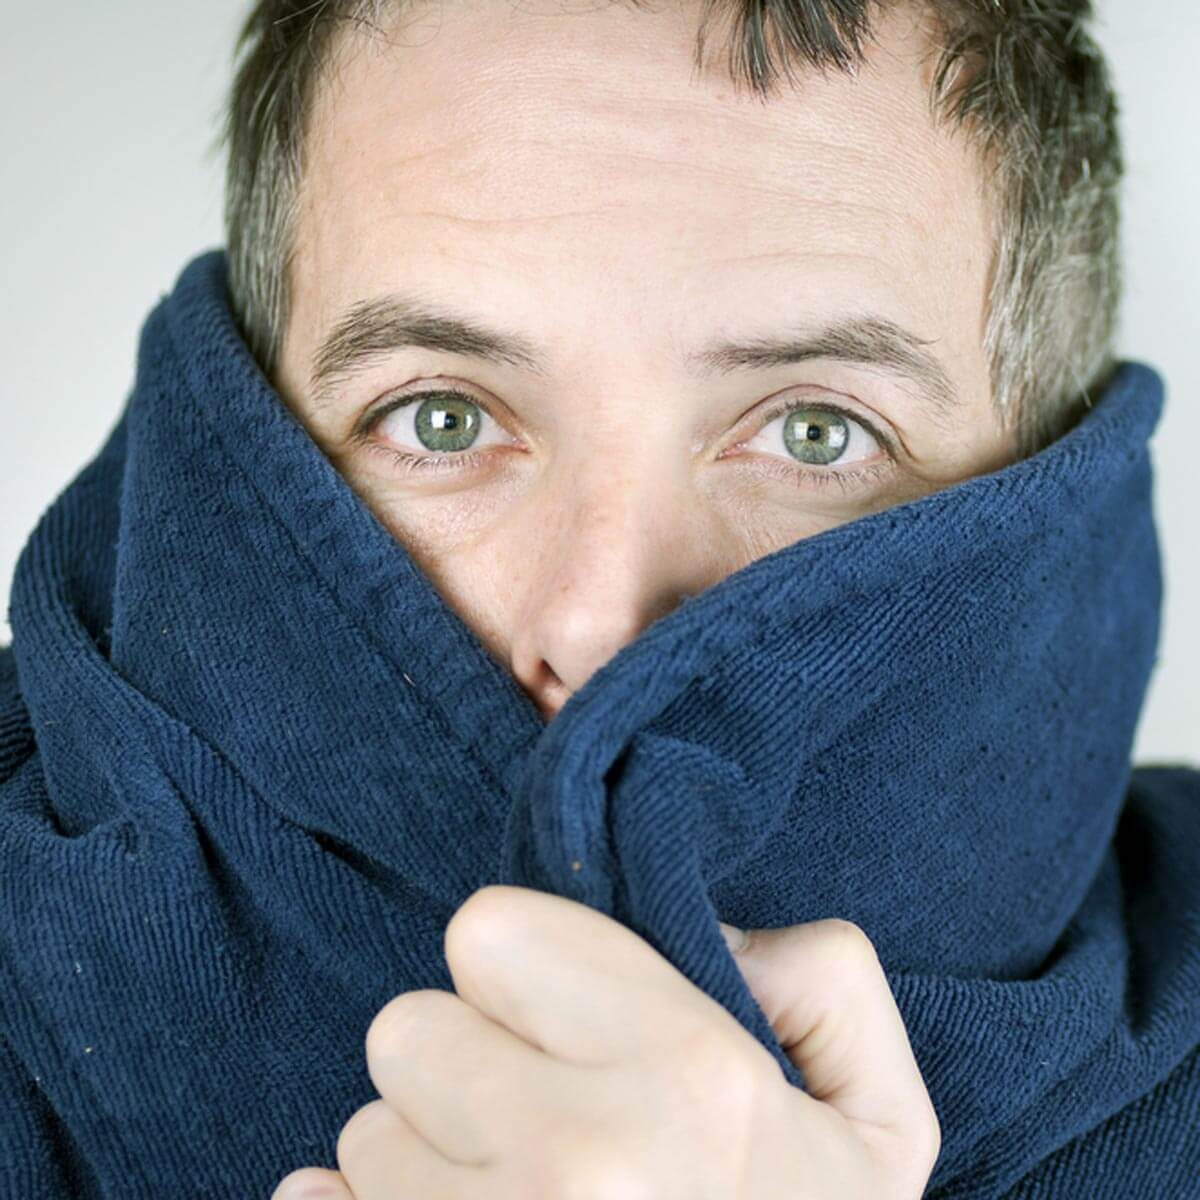 dfh1_shutterstock_74201383 cold man sweater